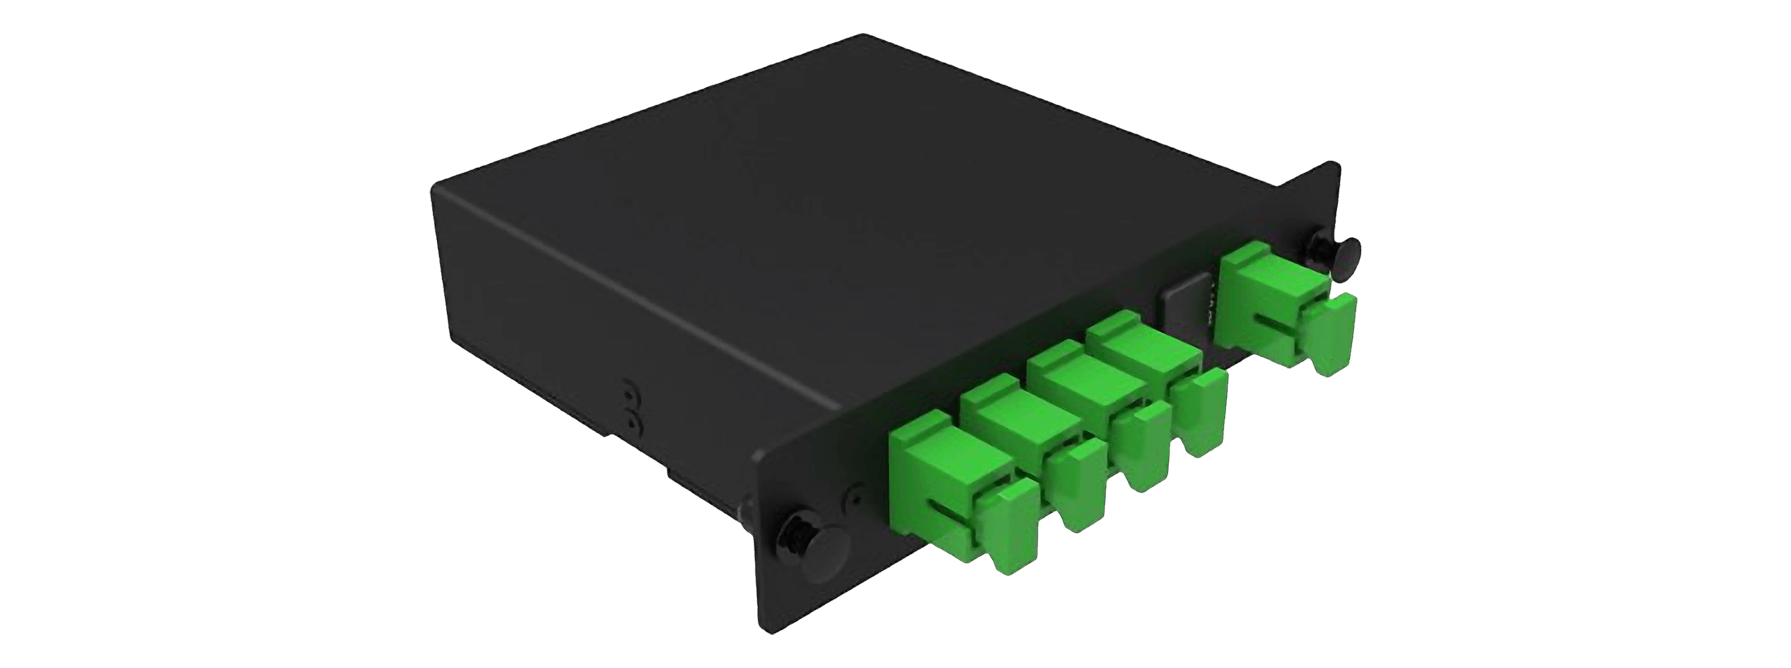 LGX Modular Pre-terminated Optical Splitter - Furukawa Central Office Broadband Systems